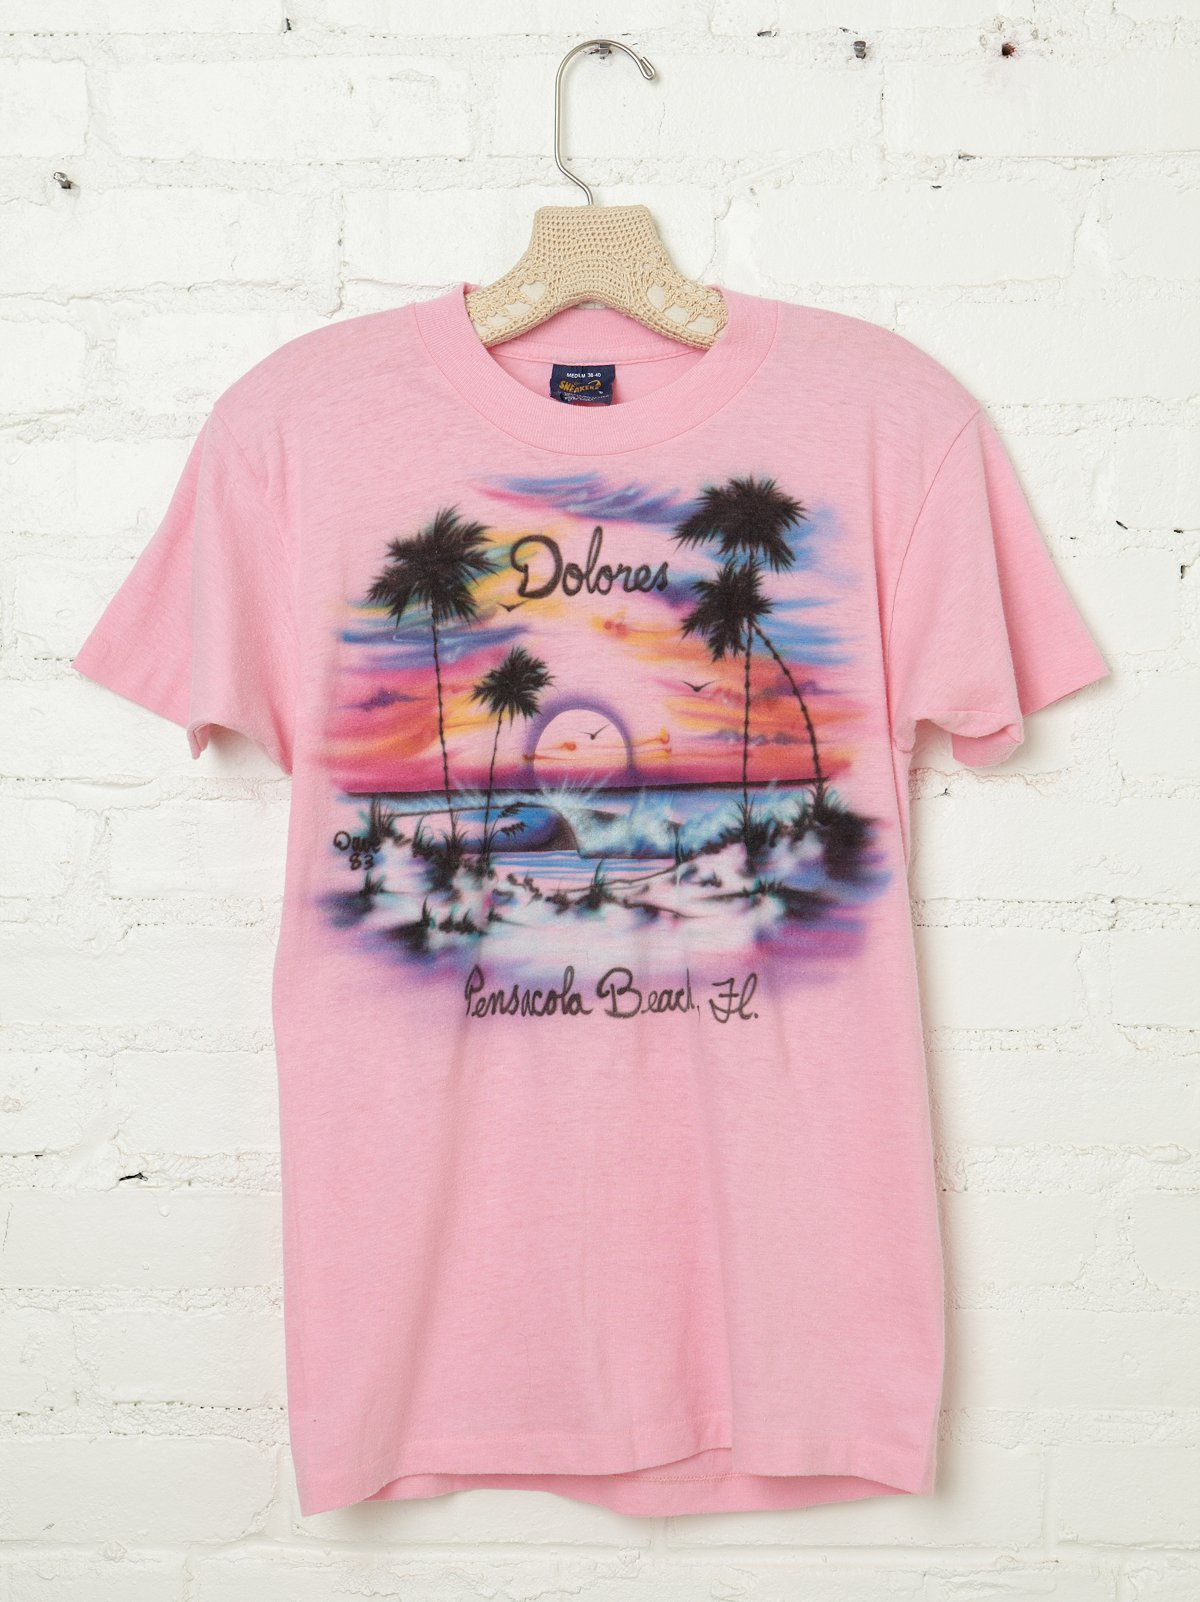 Vintage Airbrushed Tee